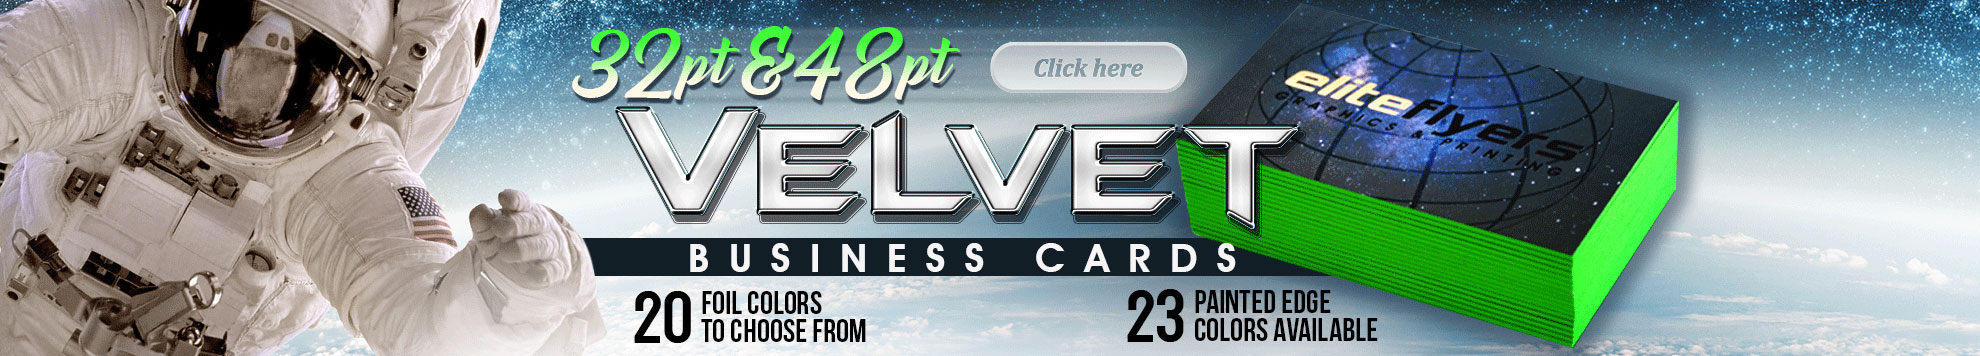 32pt & 48pt Velvet Business Cards